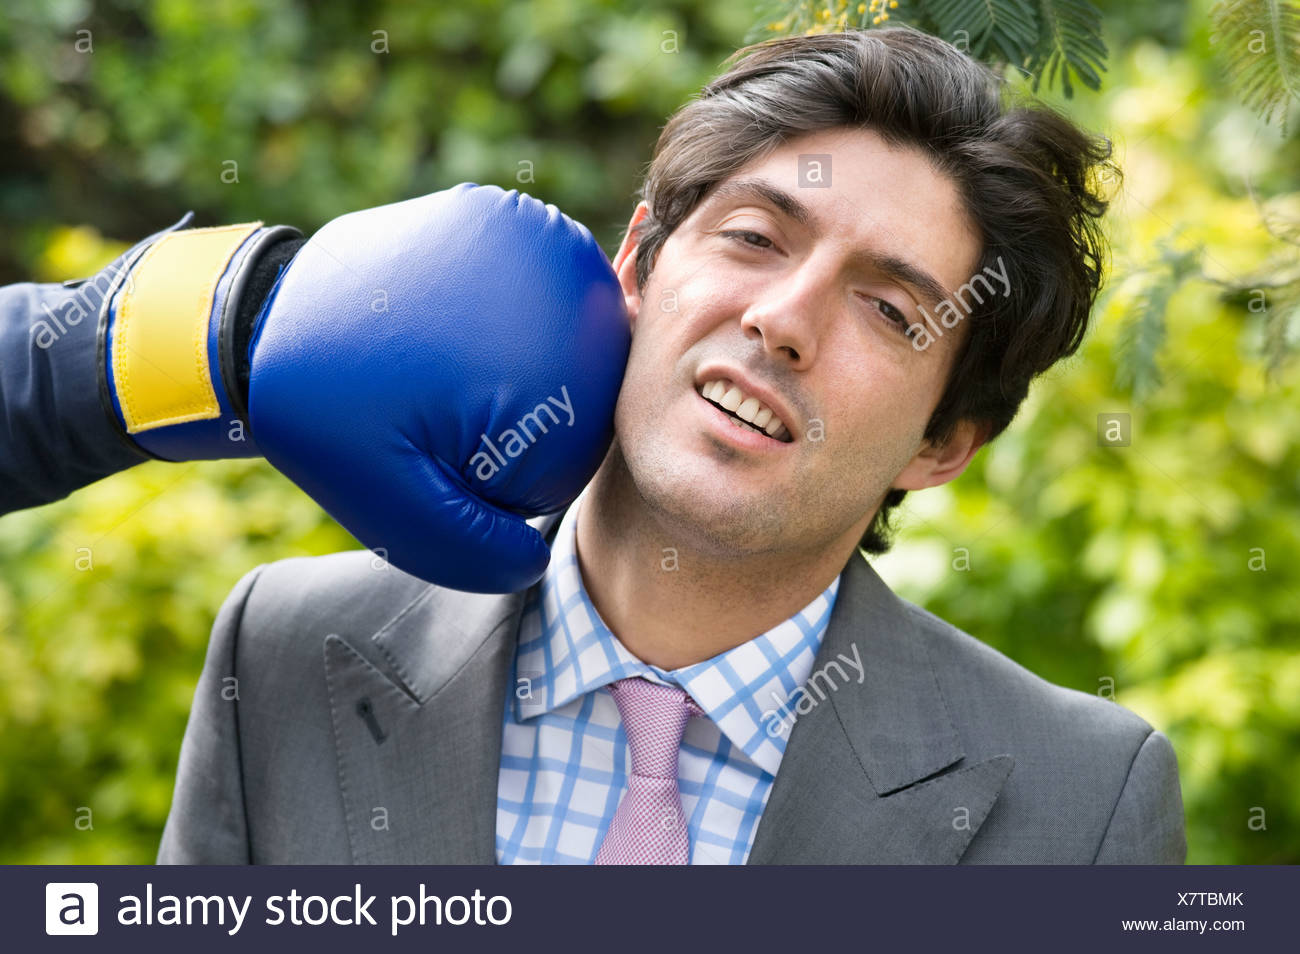 Young man getting hit - Stock Image